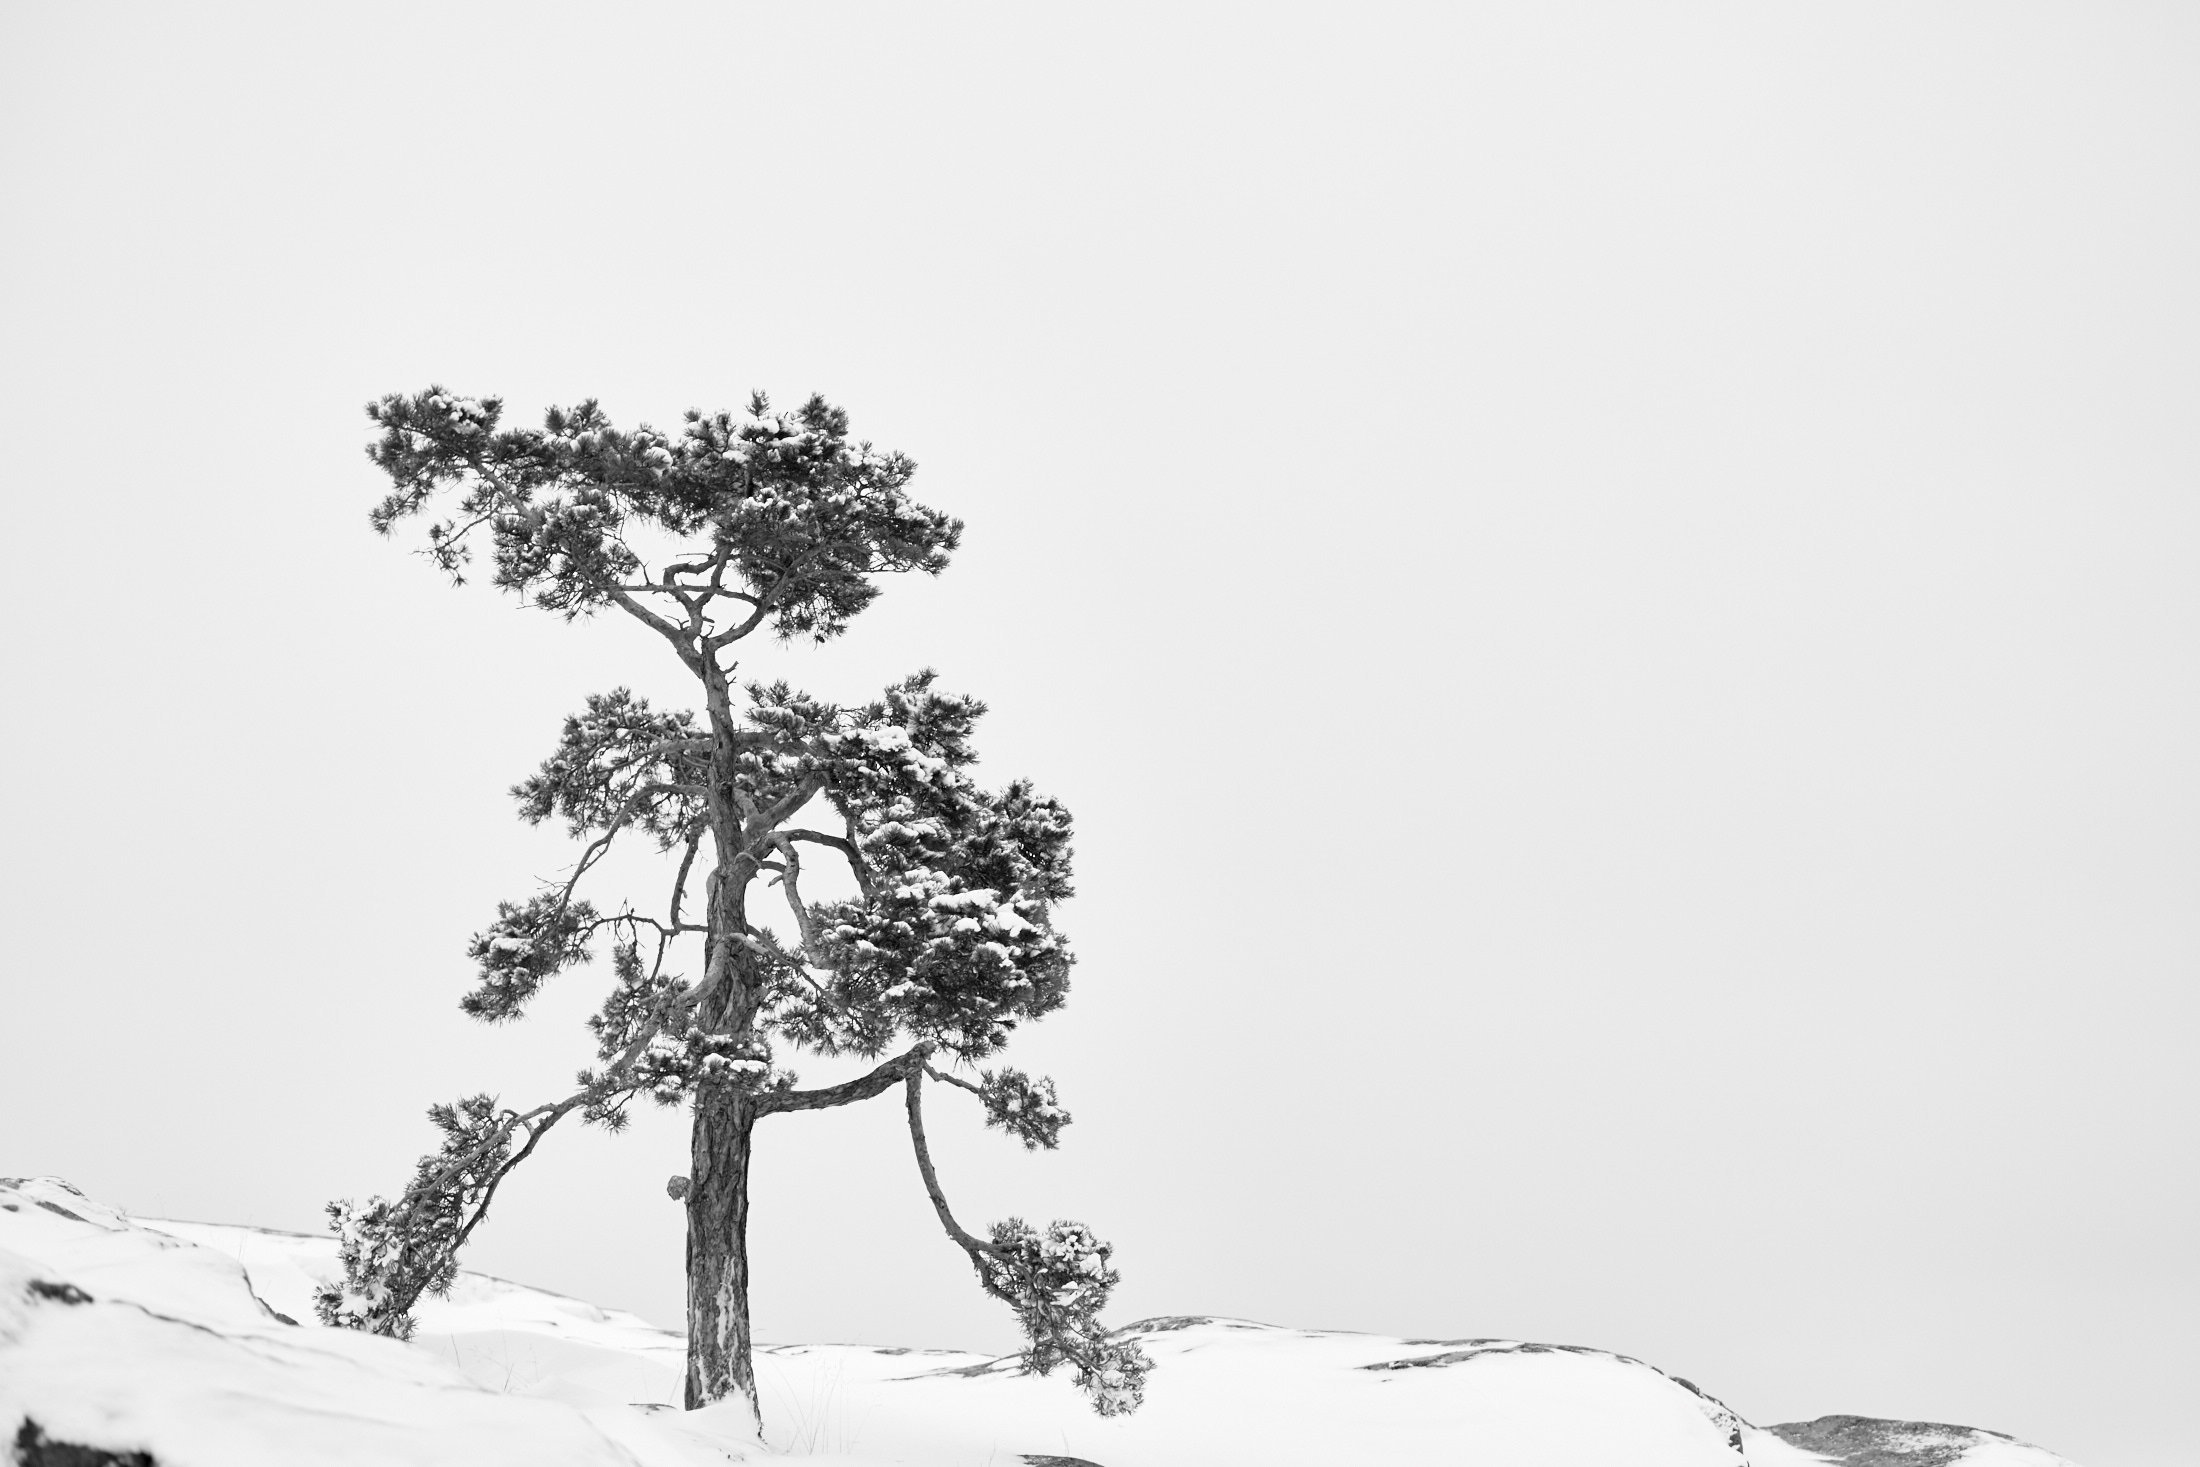 The Pine Tree - Winter